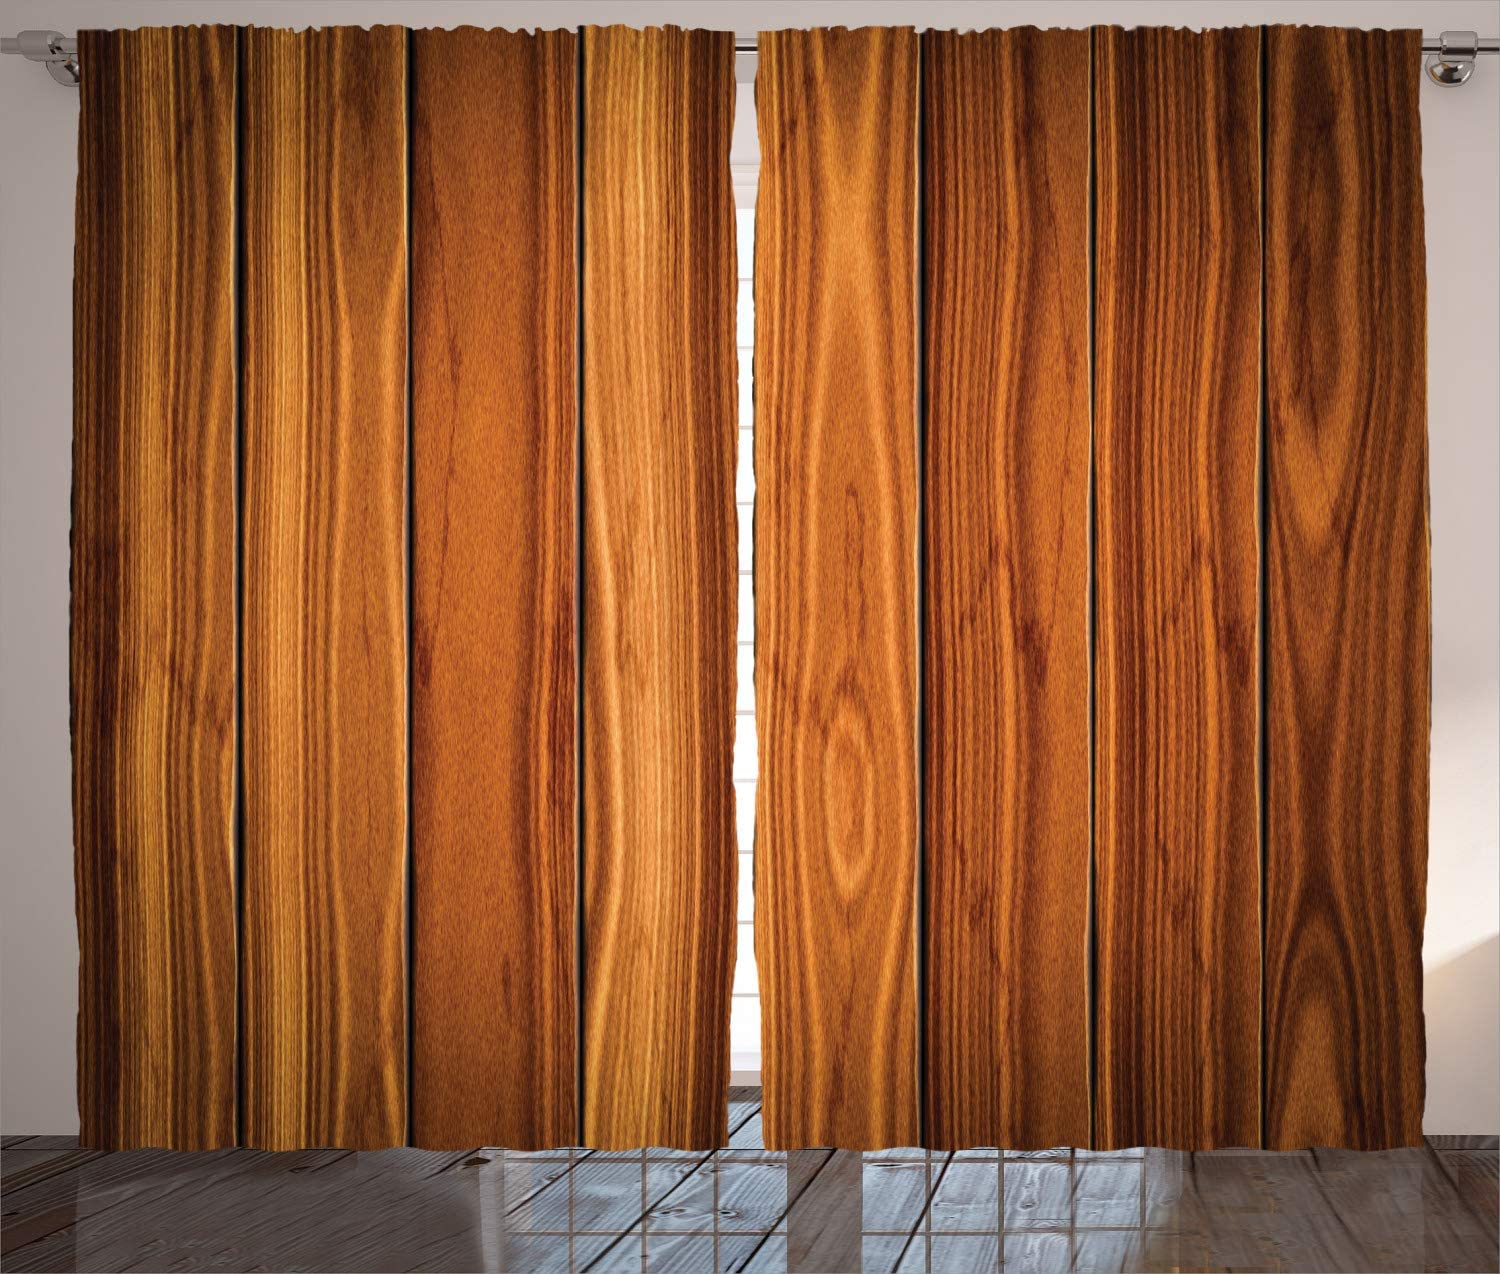 Ambesonne Rustic Curtains Vertical Wooden Planks Image Cottage Cabin Life In Countryside Theme Living Room Bedroom Window Drapes 2 Panel Set 108 X 84 Caramel Orange Amazon Ca Home Kitchen